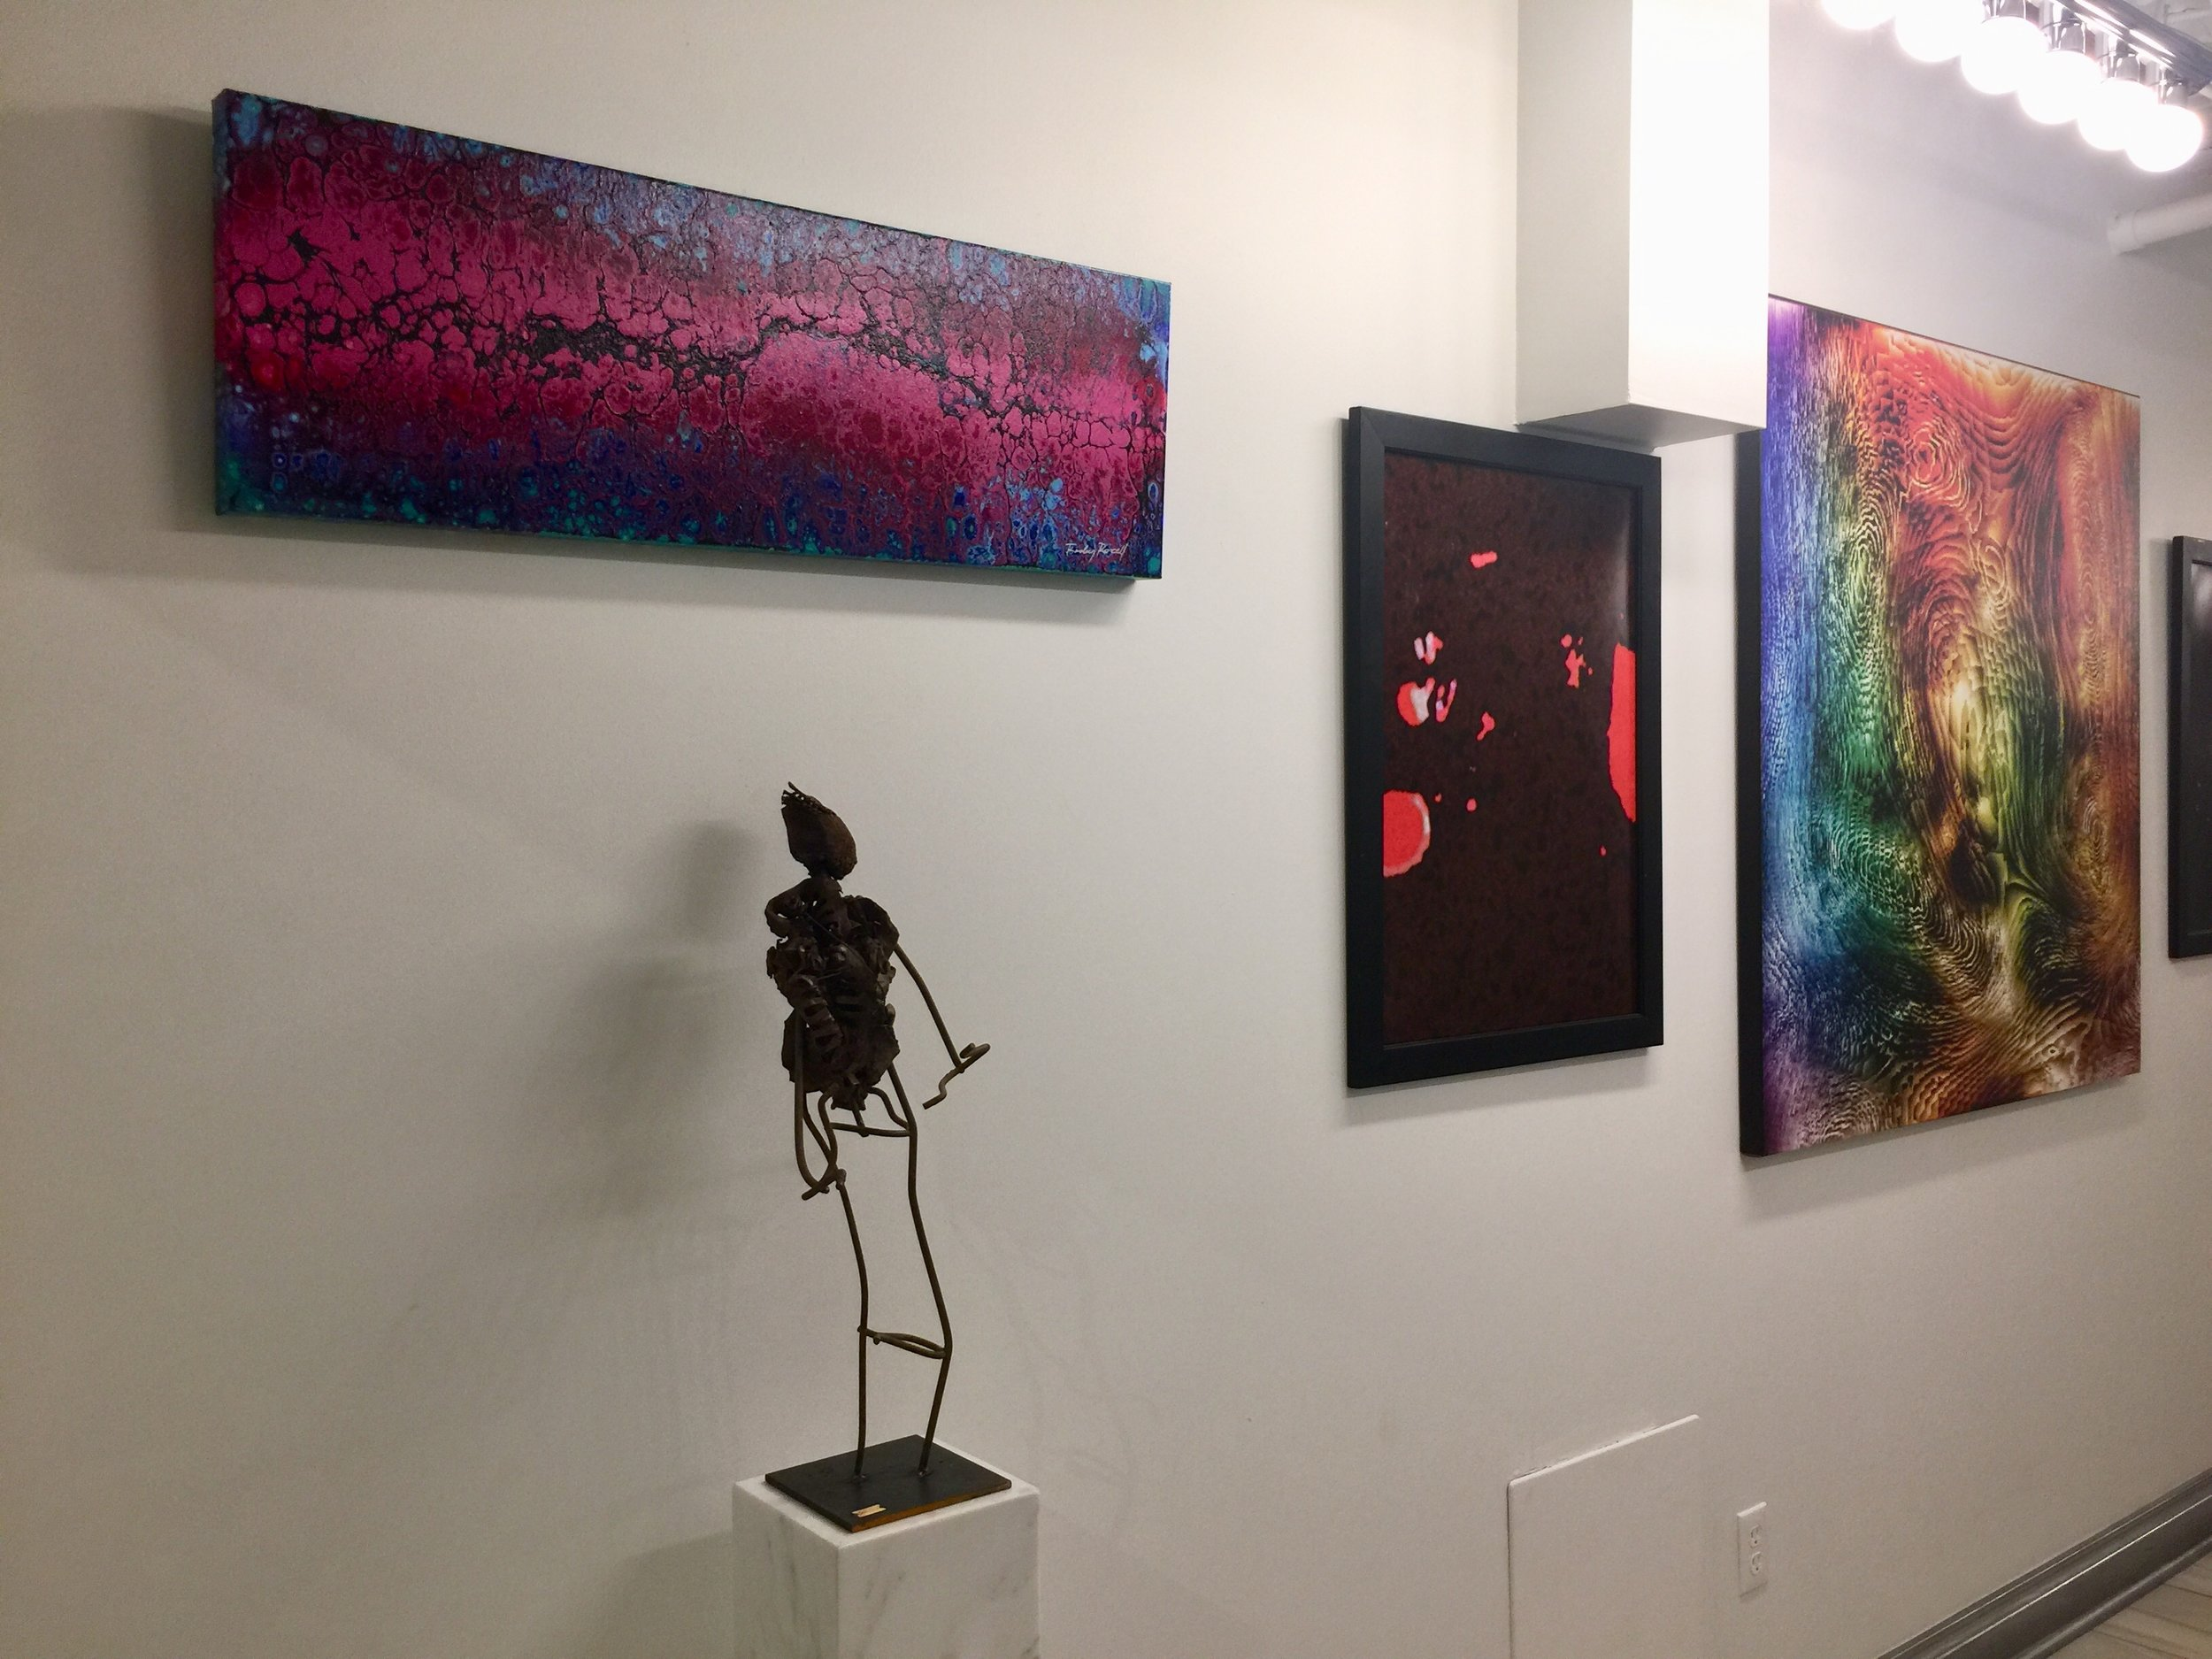 Painting by Rodney Rozell, sculpture by Michael Hanes, and prints by Allin KHG